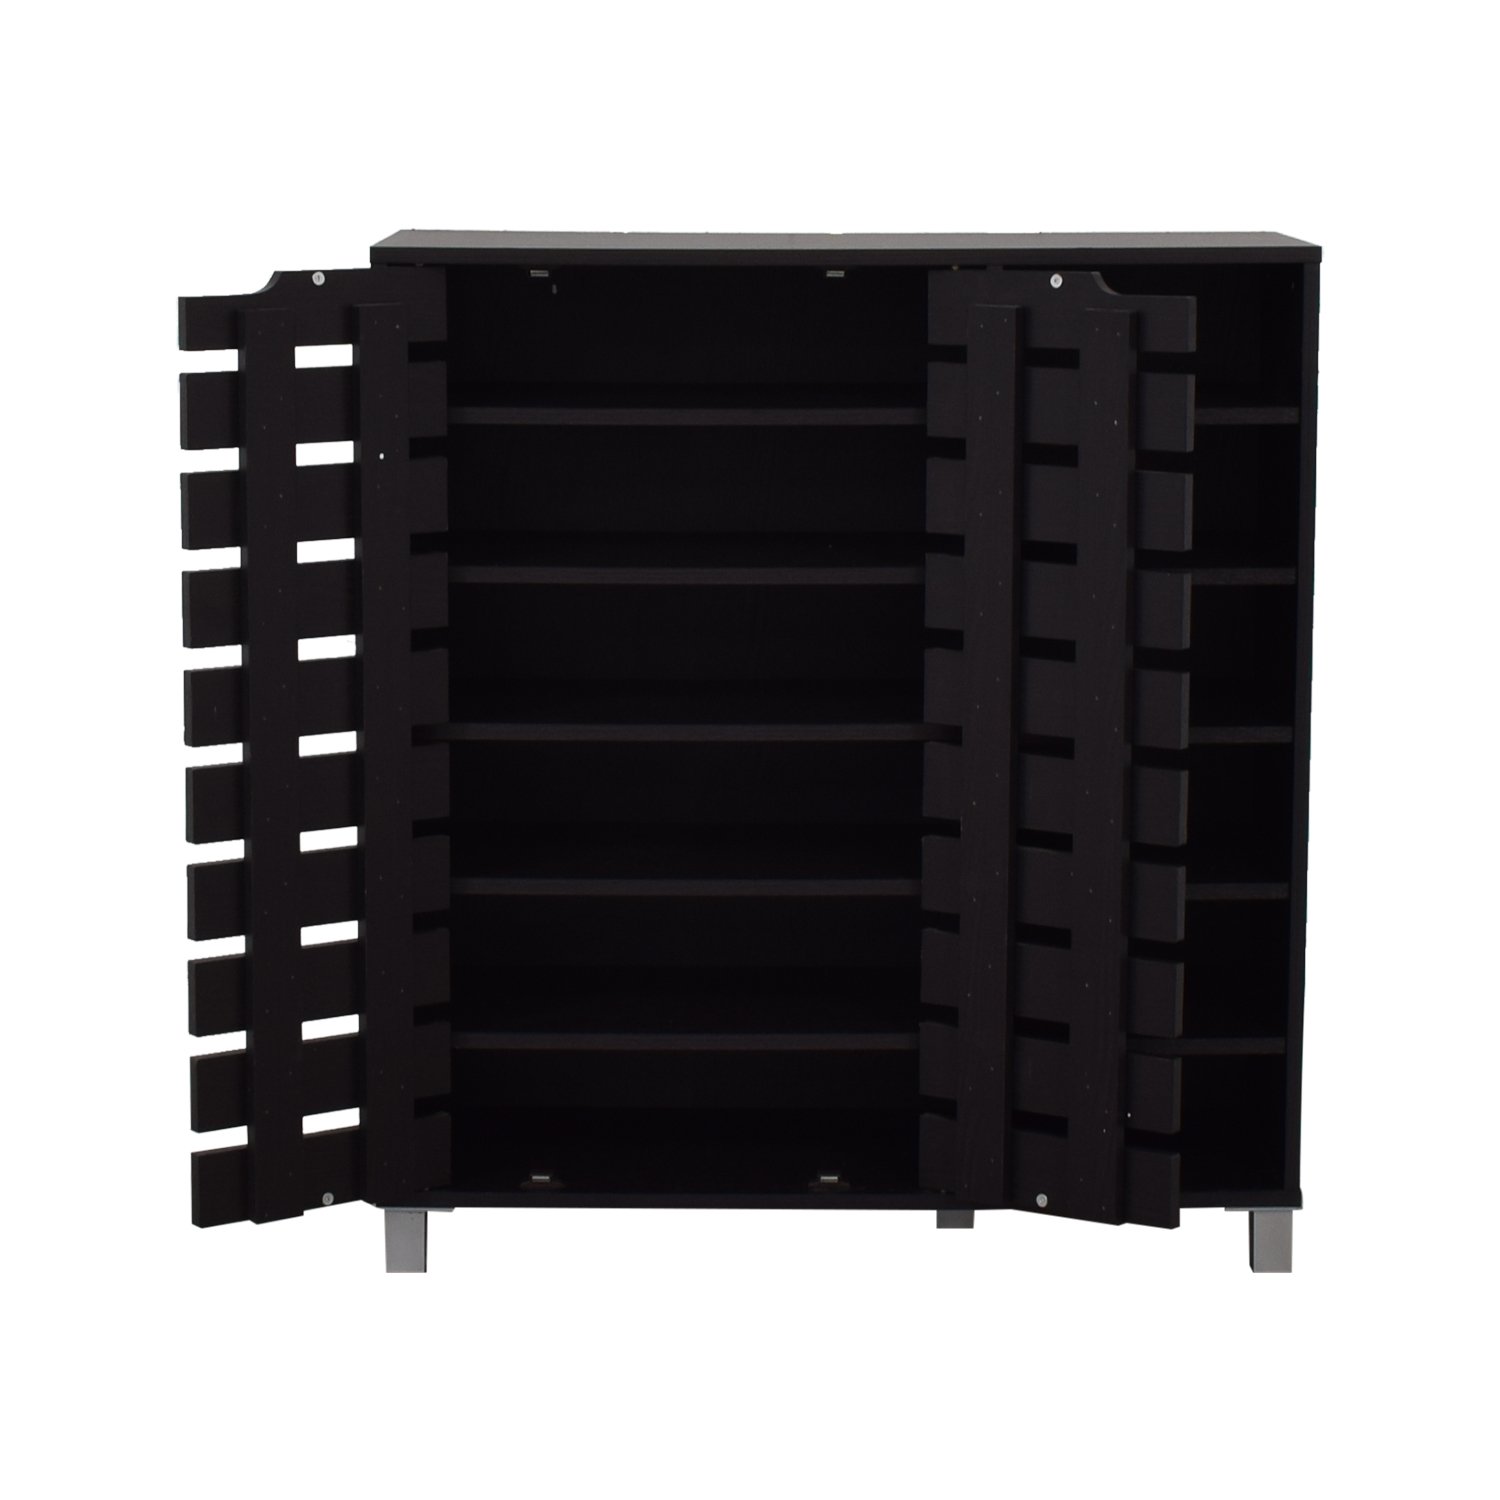 Wayfair Wayfair Black Shoe Storage Cabinet